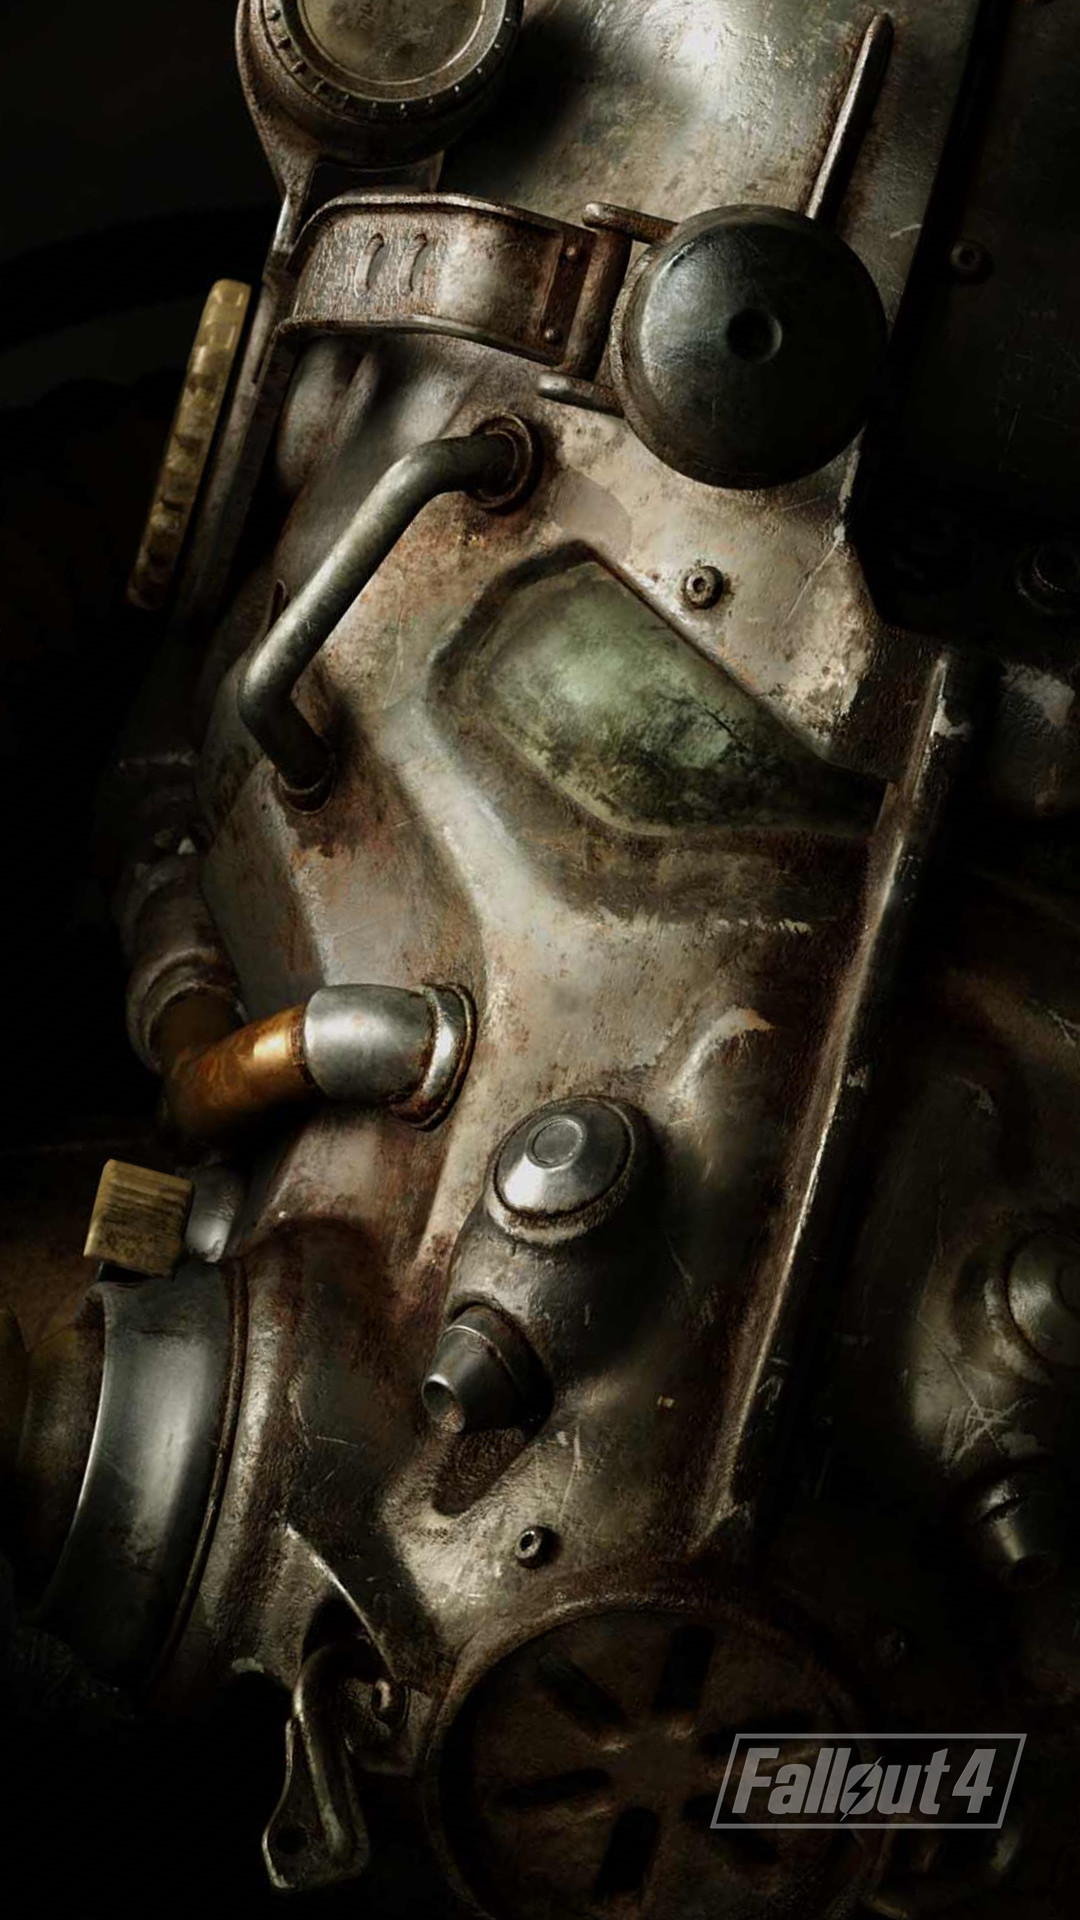 1080x1920 - Fallout iPhone 6 45